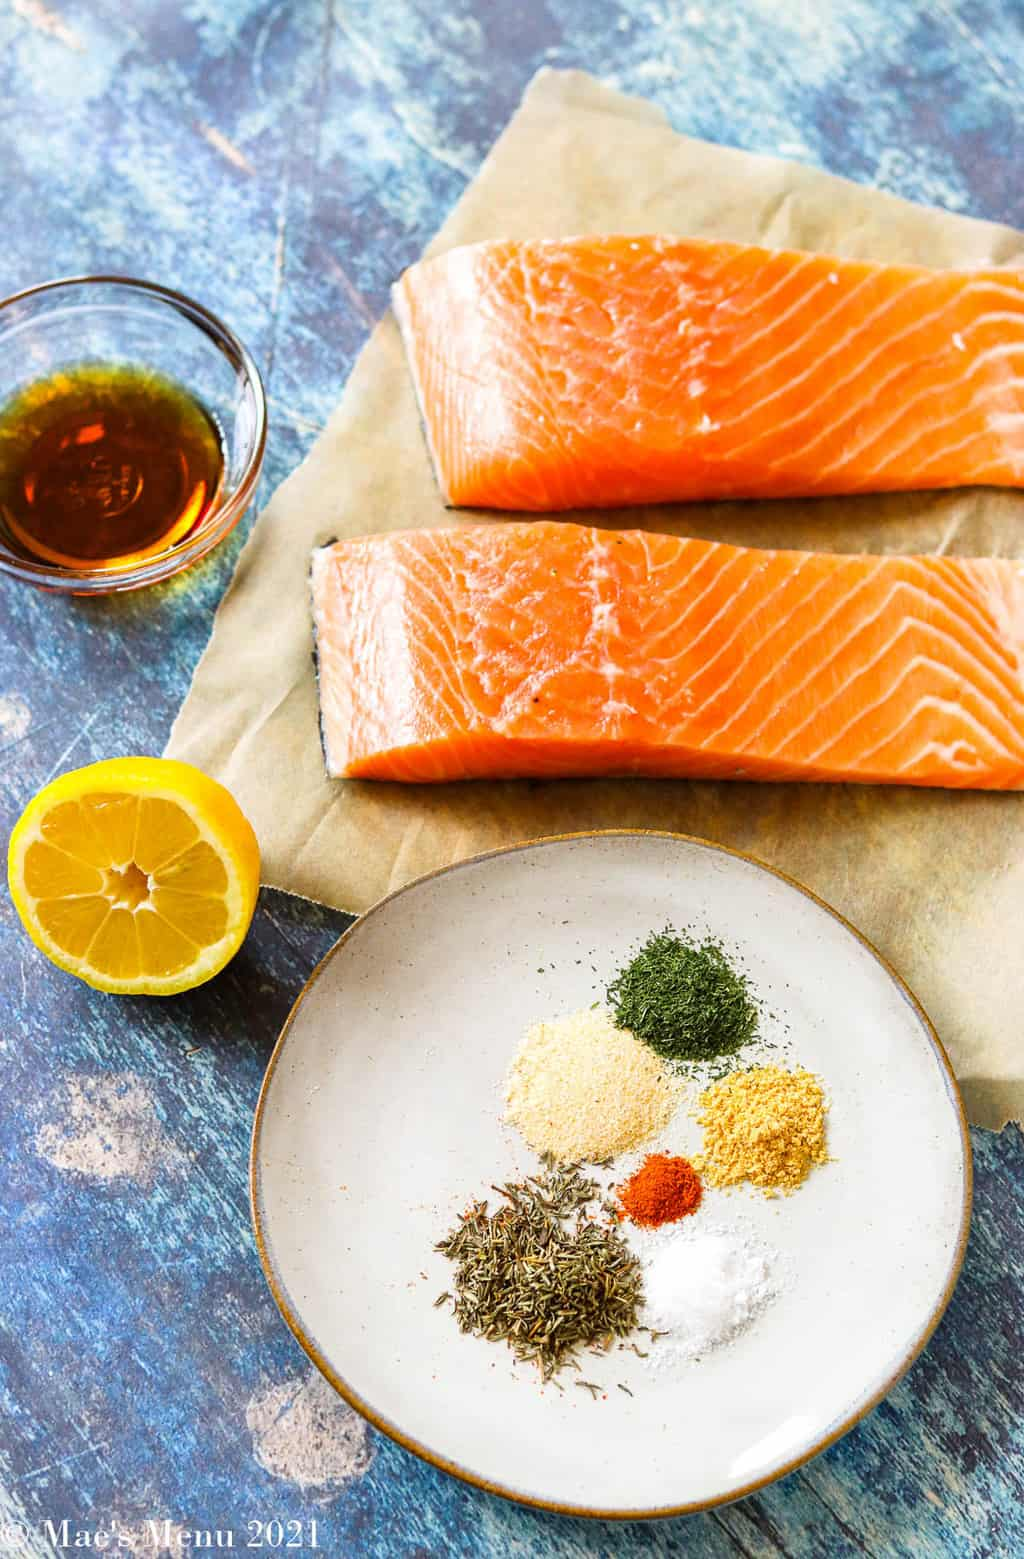 All the ingredents for air fryer salmon: salmon, spices, lemon, and maple syrup